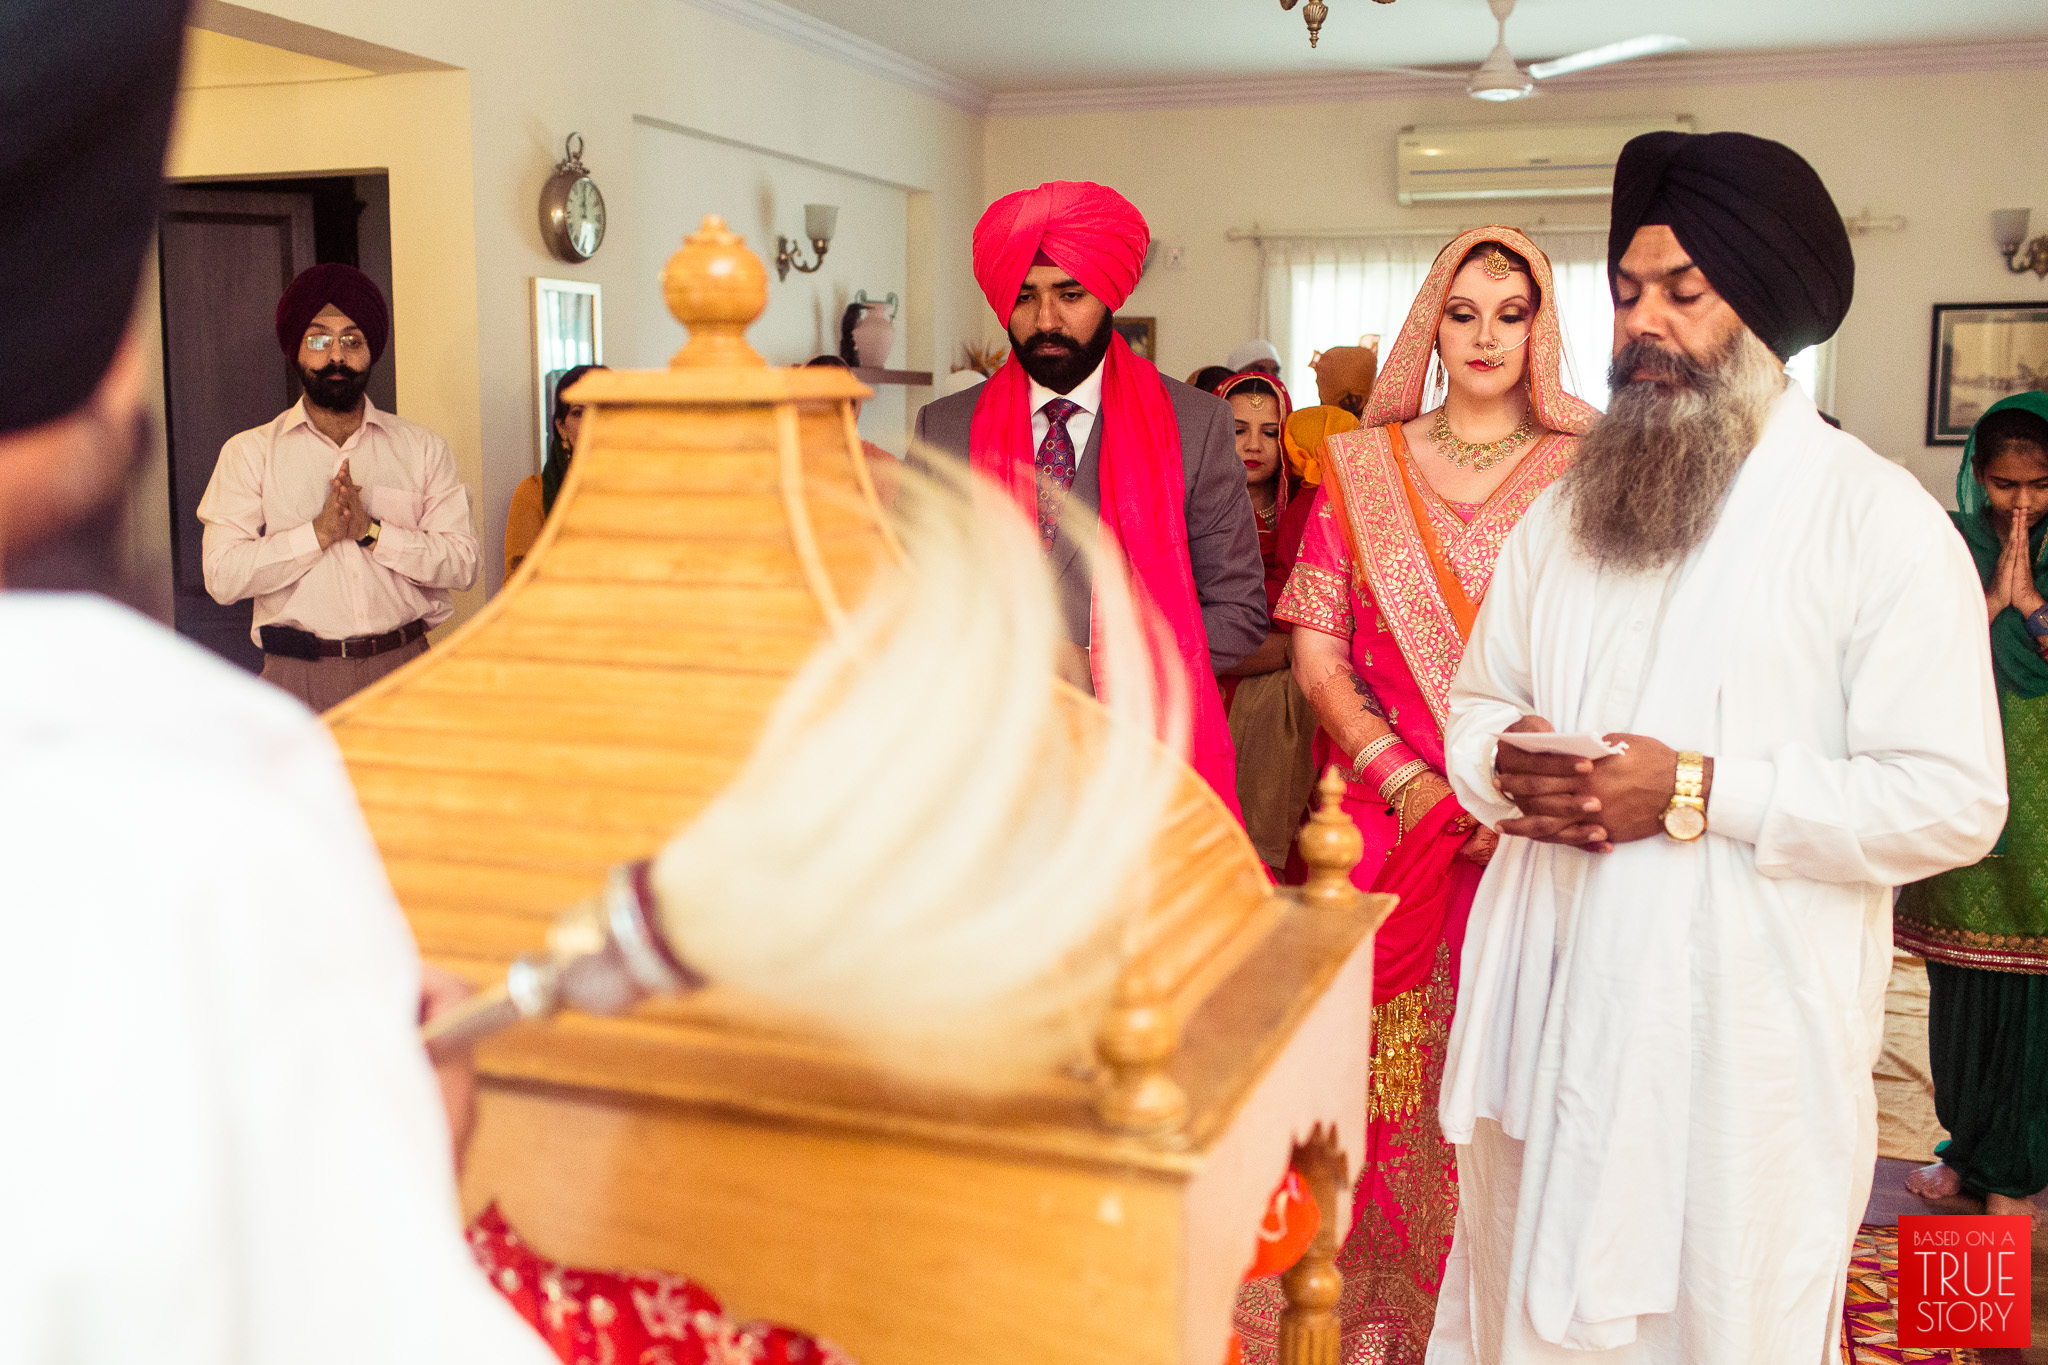 candid-photography-sikh-wedding-bangalore-0020.jpg